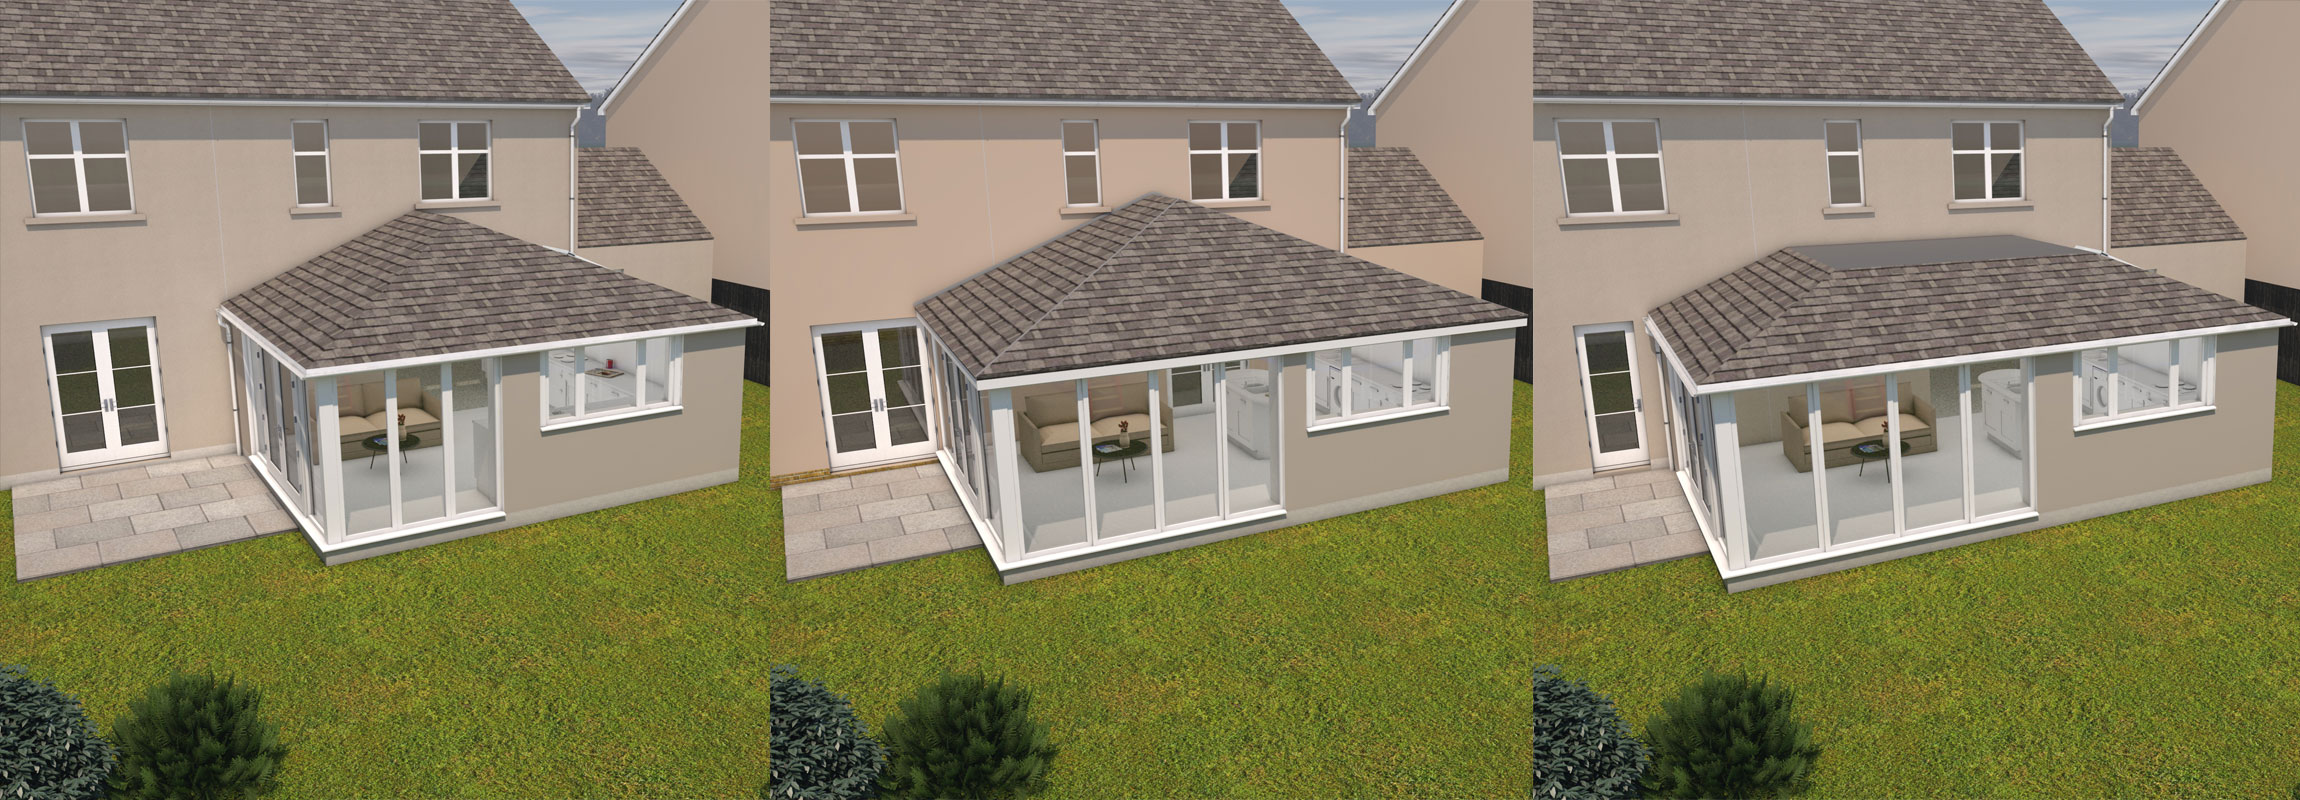 thistle home extension design aberdeen - Home Extension Designs